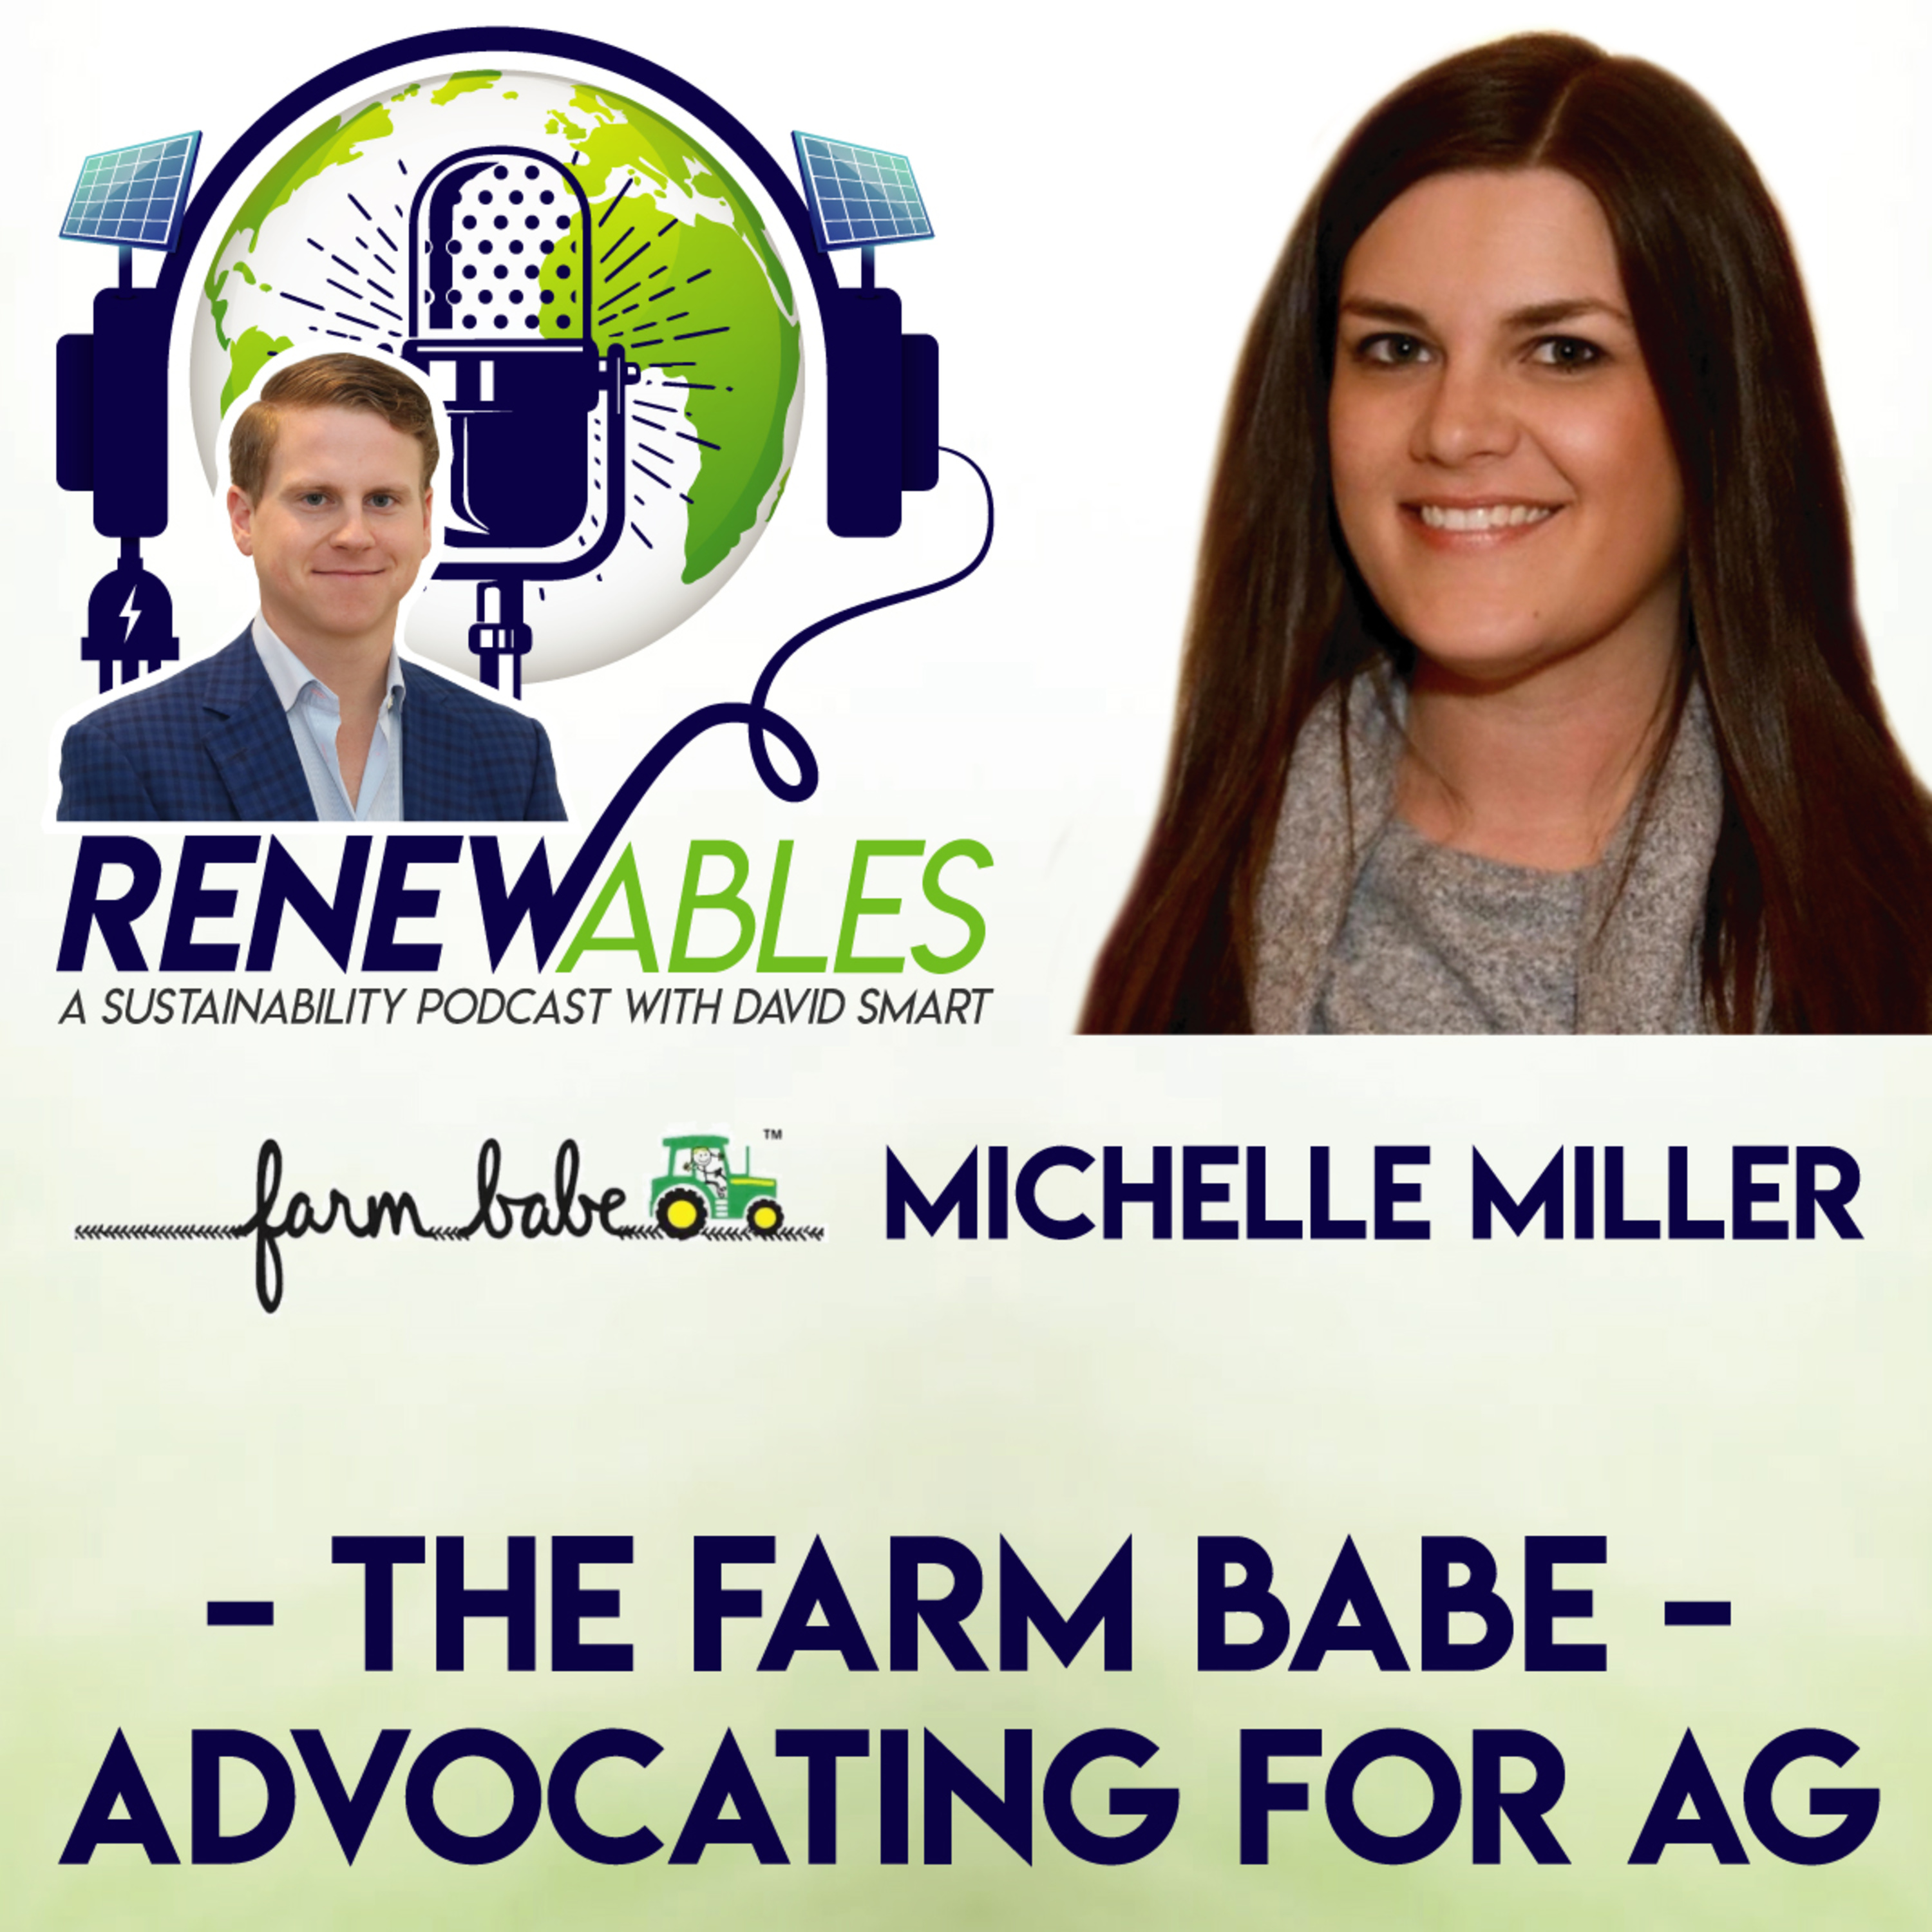 RENEWables Podcast: The Farm Babe   Advocating For Ag